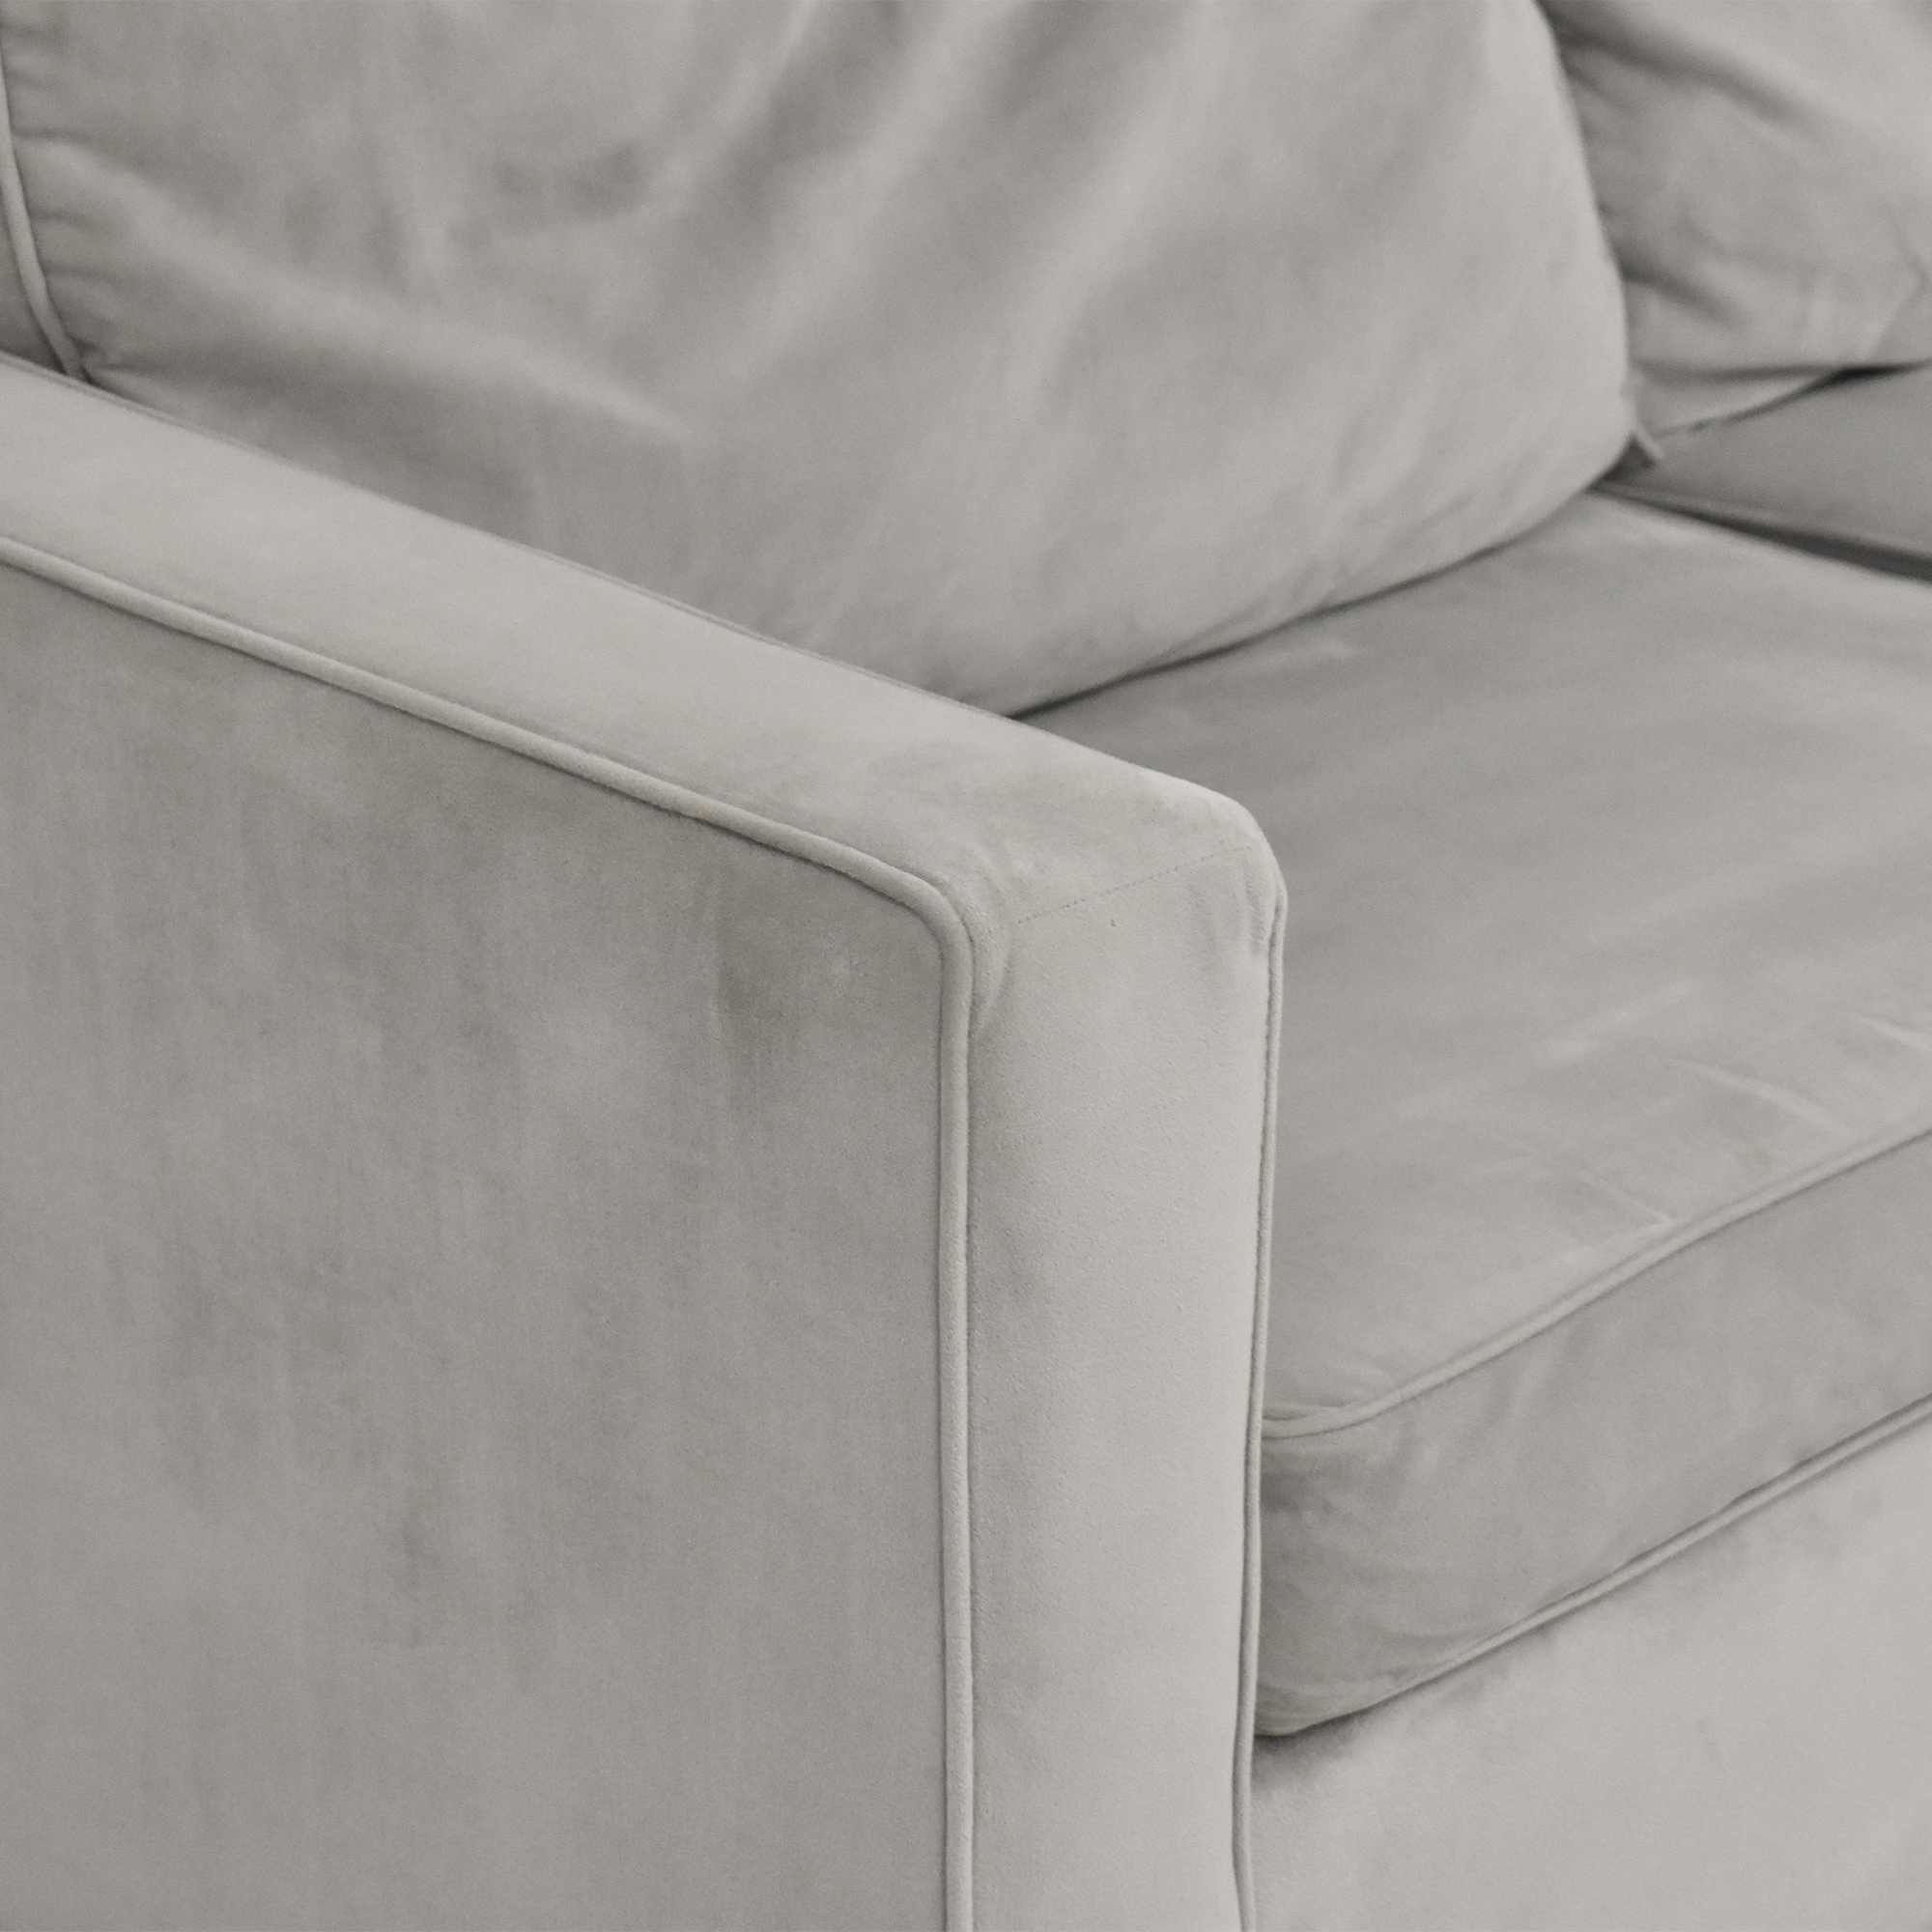 West Elm West Elm Henry Two Cushion Sofa price